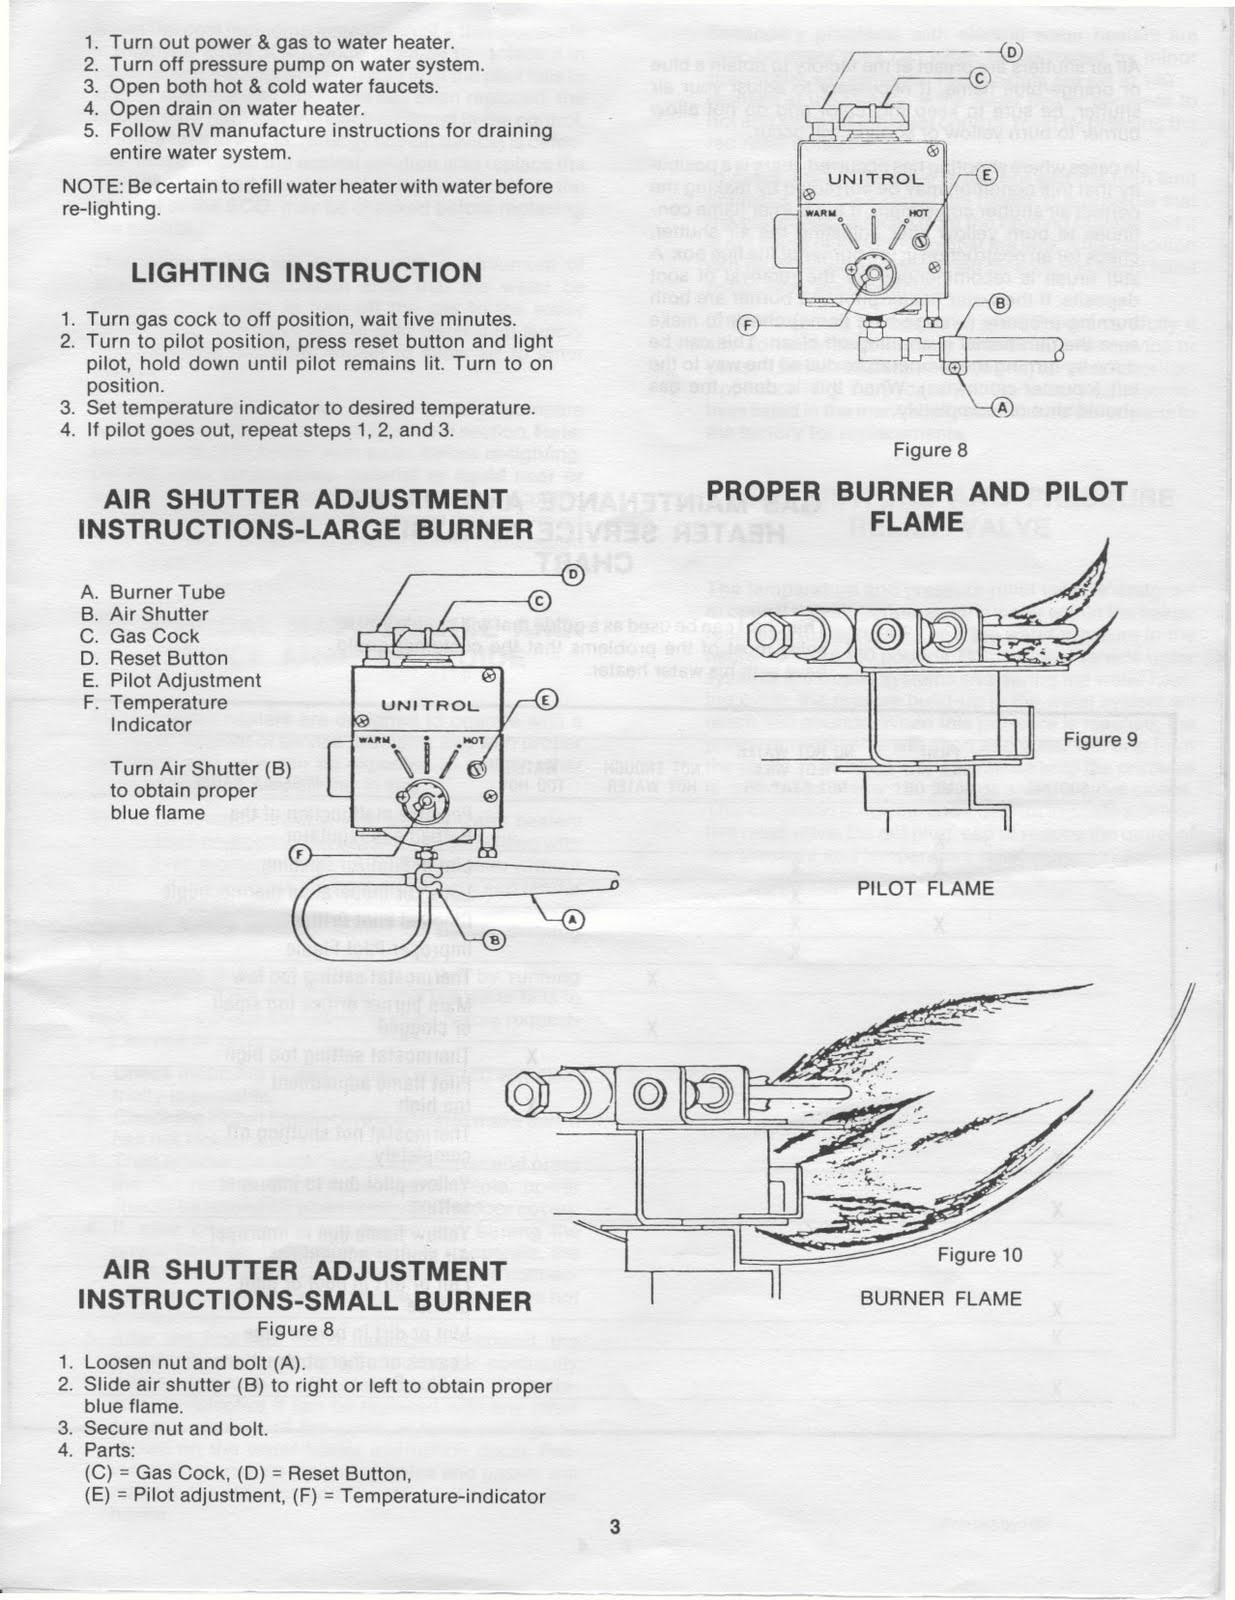 mor flo water heater installation and service manual 6500015 [ 1235 x 1600 Pixel ]